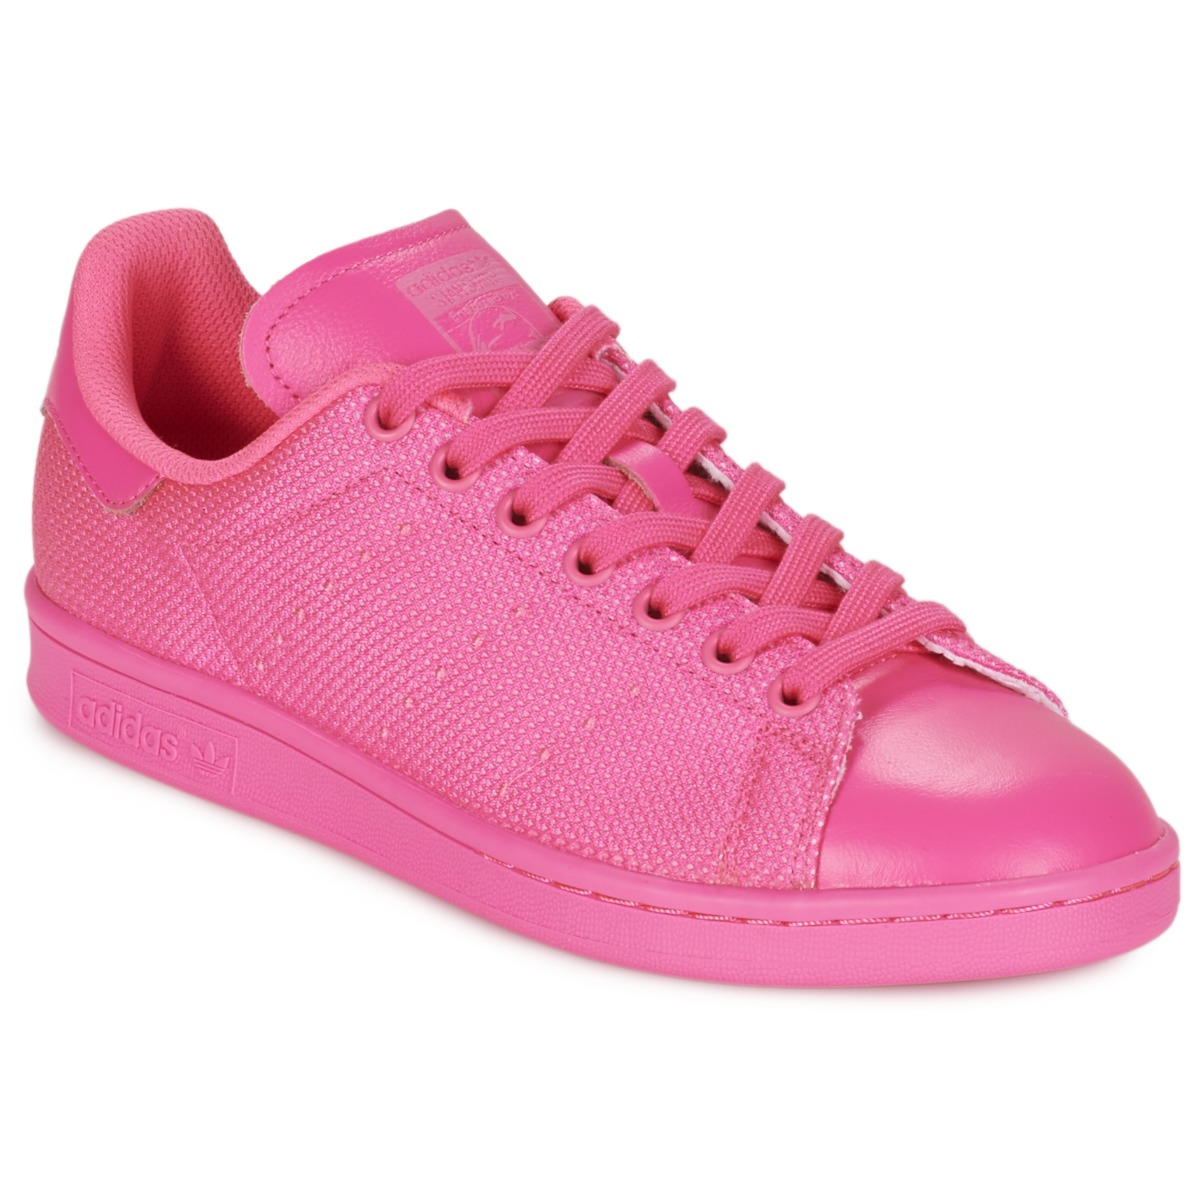 adidas originals stan smith rose chaussure pas cher avec chaussures baskets. Black Bedroom Furniture Sets. Home Design Ideas